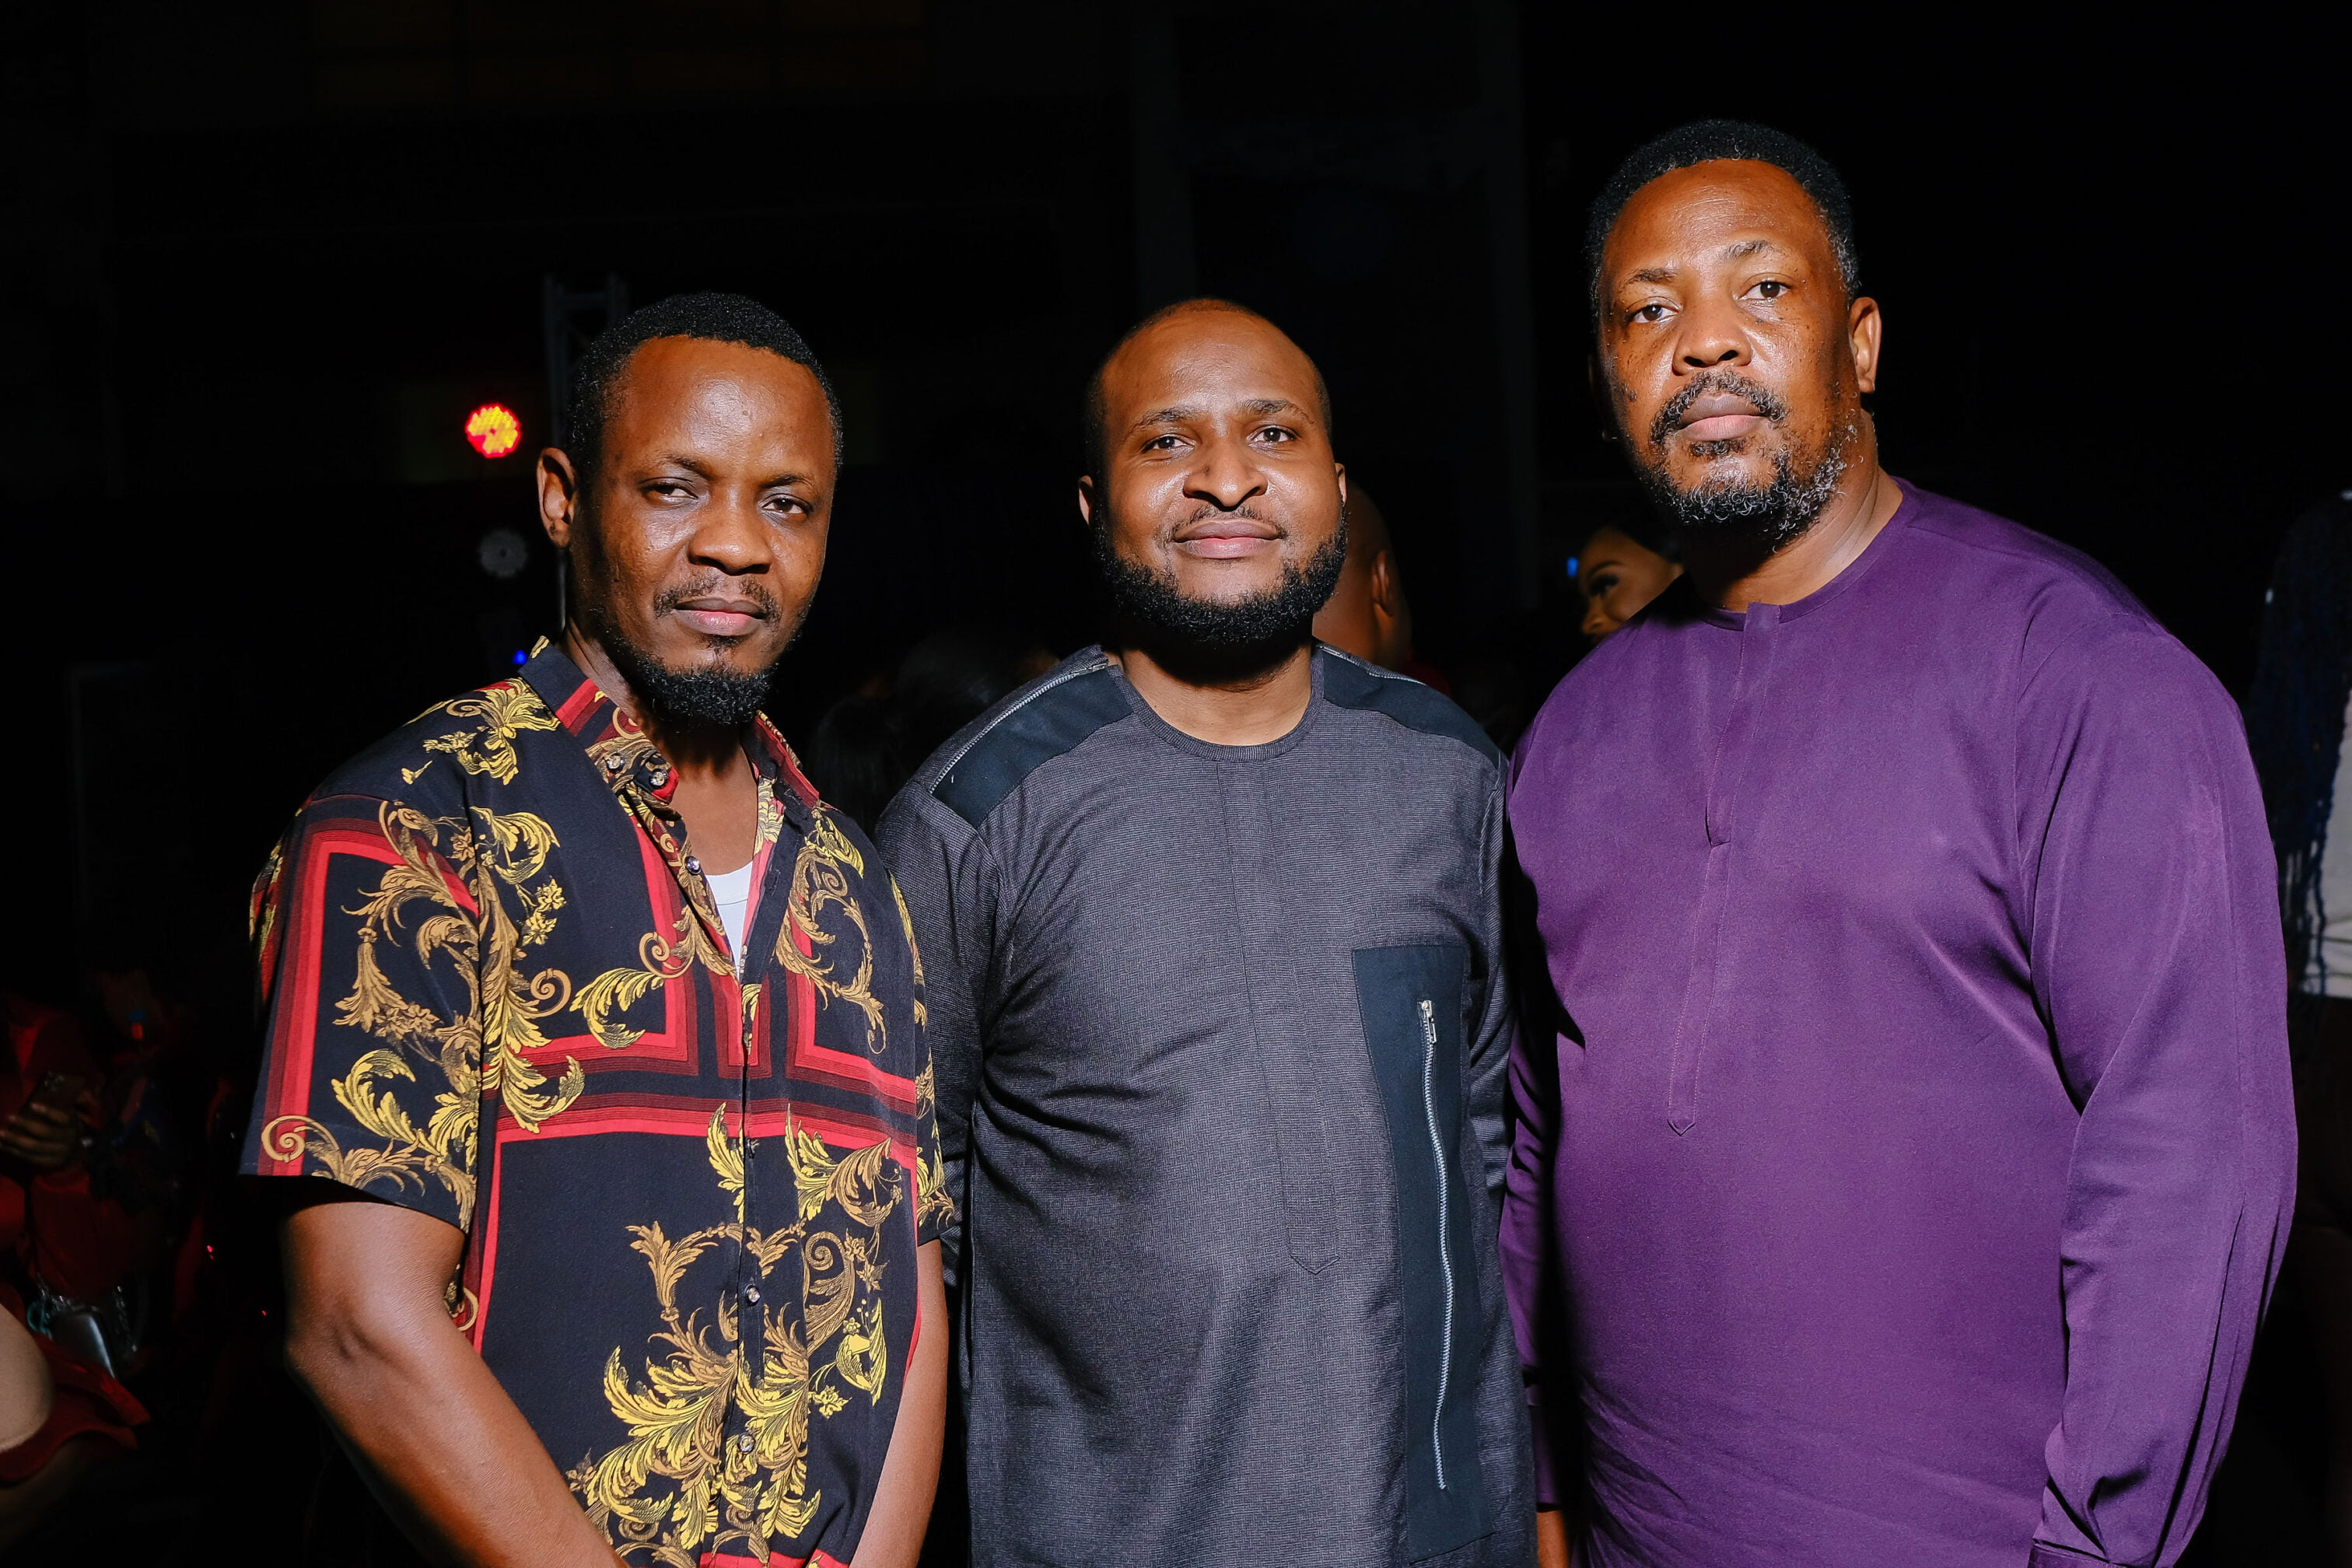 moses babatope and friends at the premiere of nneka the pretty serpent